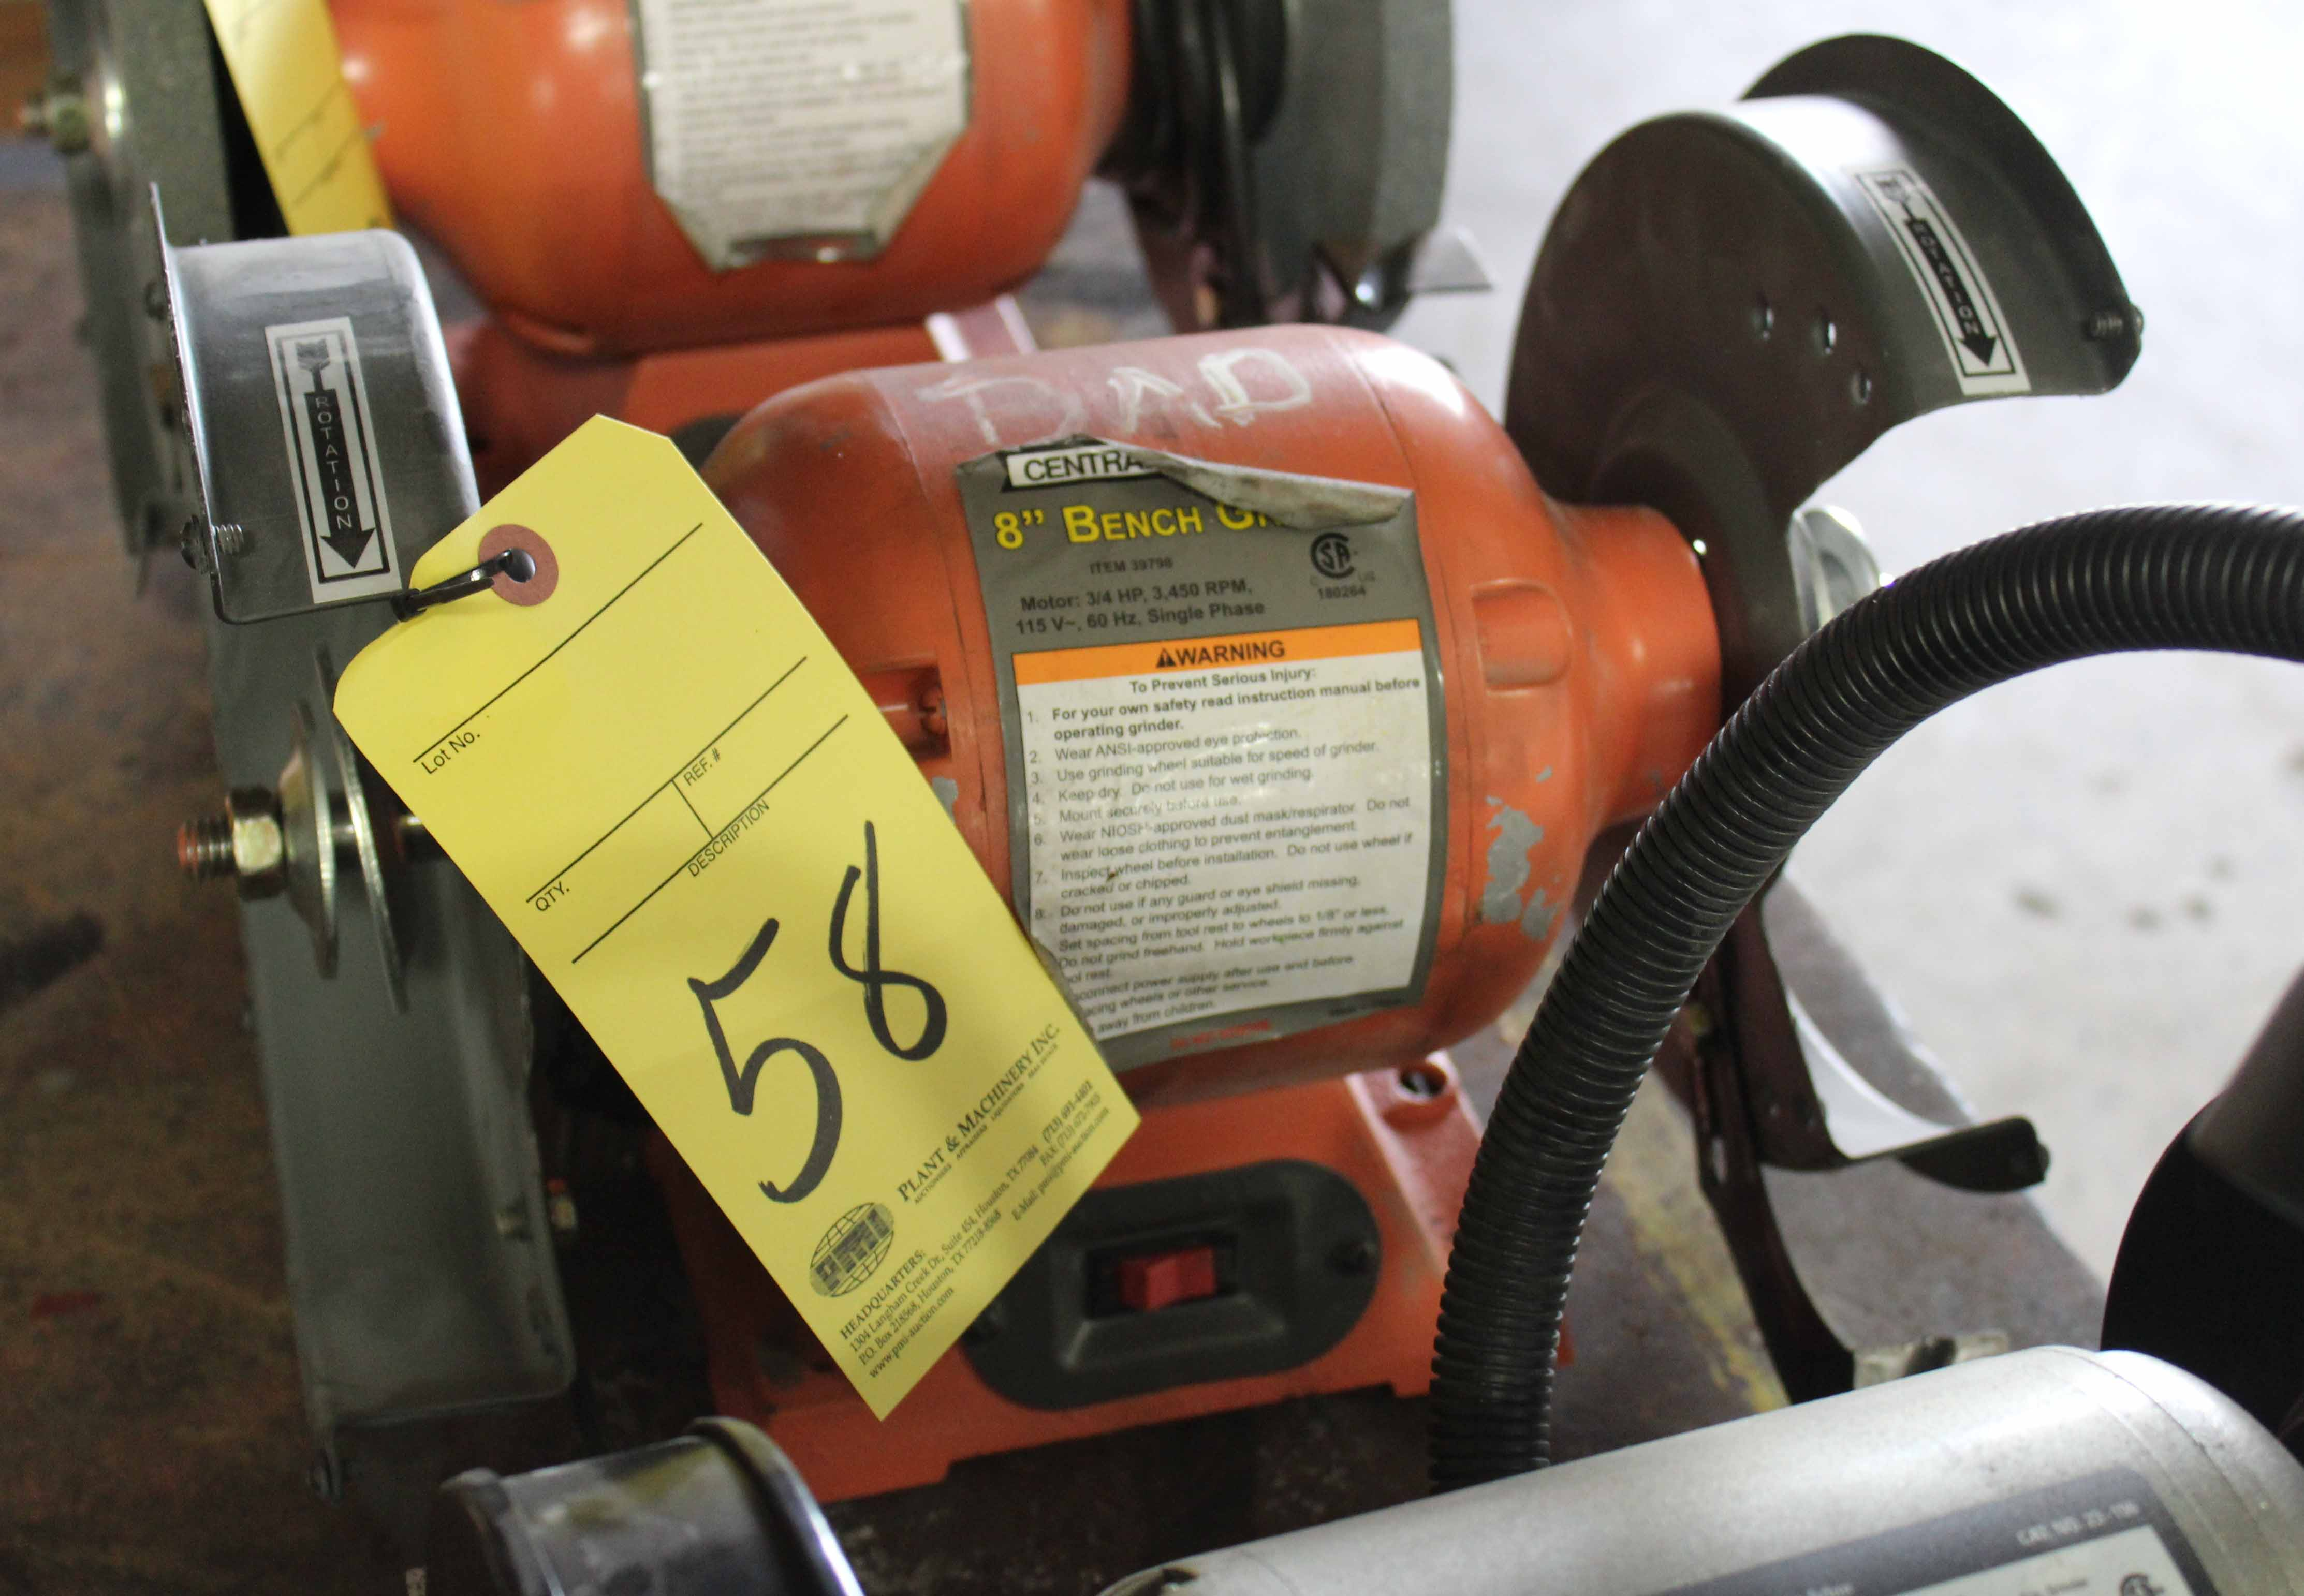 """Lot 58 - BENCH GRINDER, CENTRAL 8"""" (not in working condition)"""